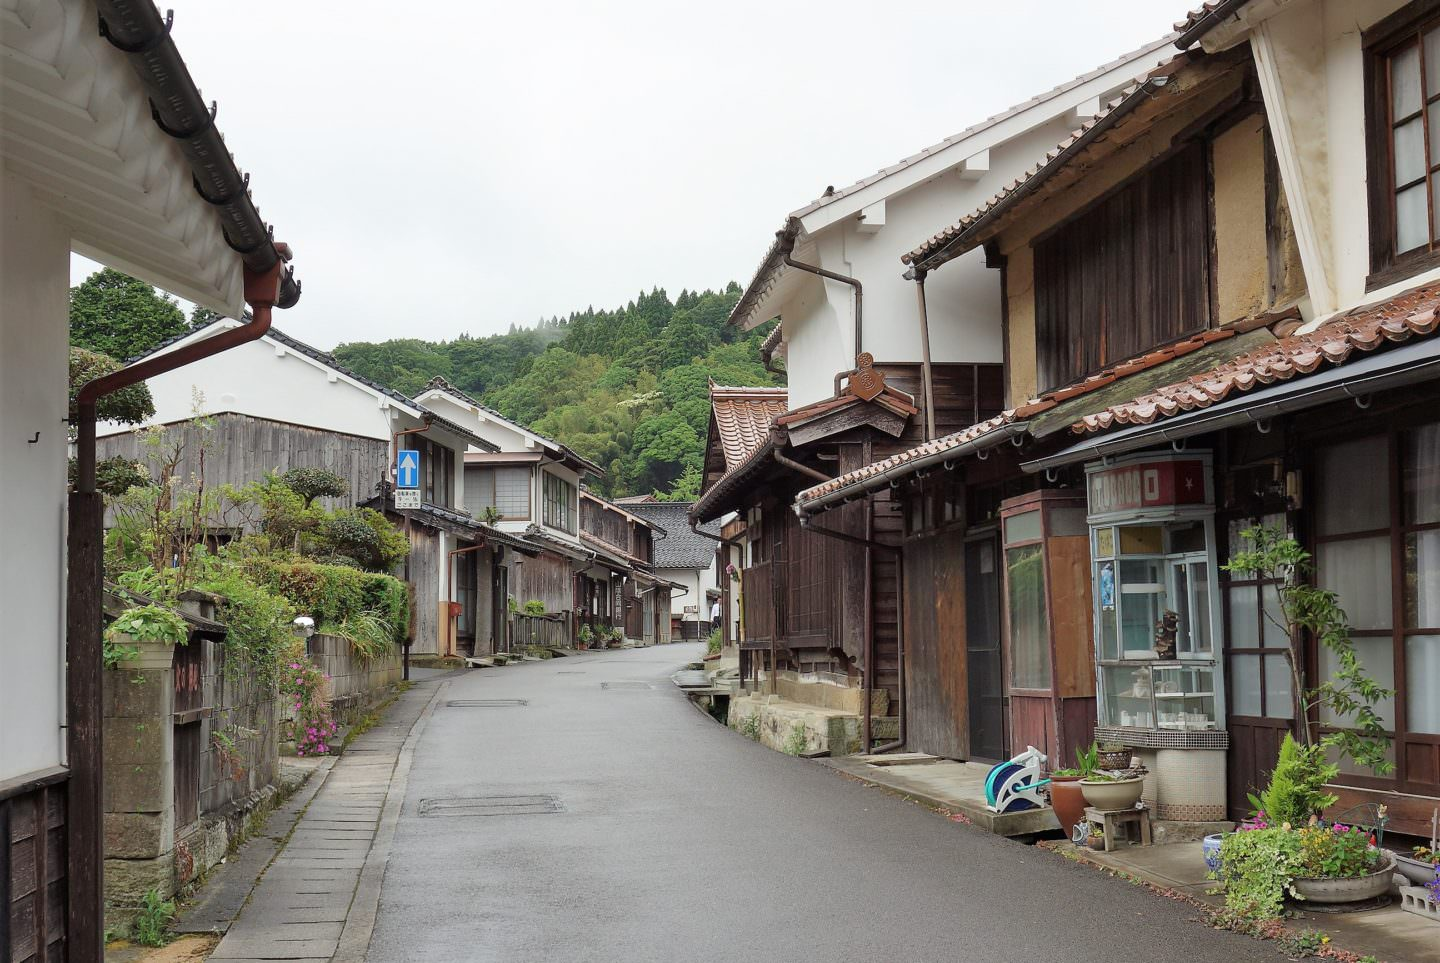 Strolling the historical Omori district in Oda, Shimane Prefecture, near Iwami Ginzan Silver Mine.